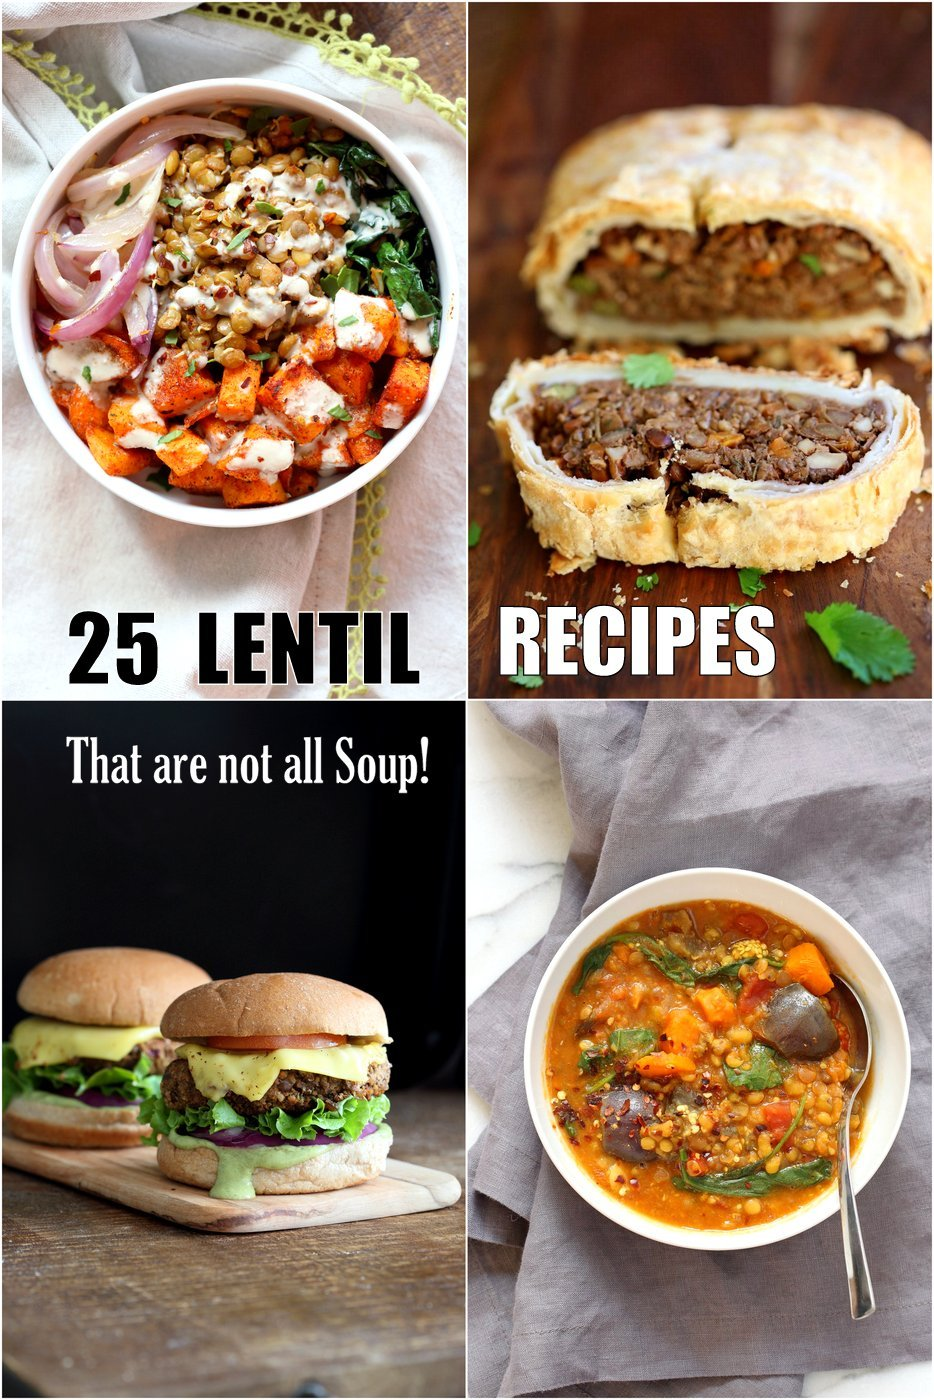 25 Easy Lentil Recipes that are not all Lentil Soup. Brown, green, Red Lentils in Bowls, tacos, Soups, enchiladas, sloppy sandwiches, lentil fritters, burger patties, casseroles and more. Vegan #Glutenfree #Soyfree #nutfree options #vegan #veganricha